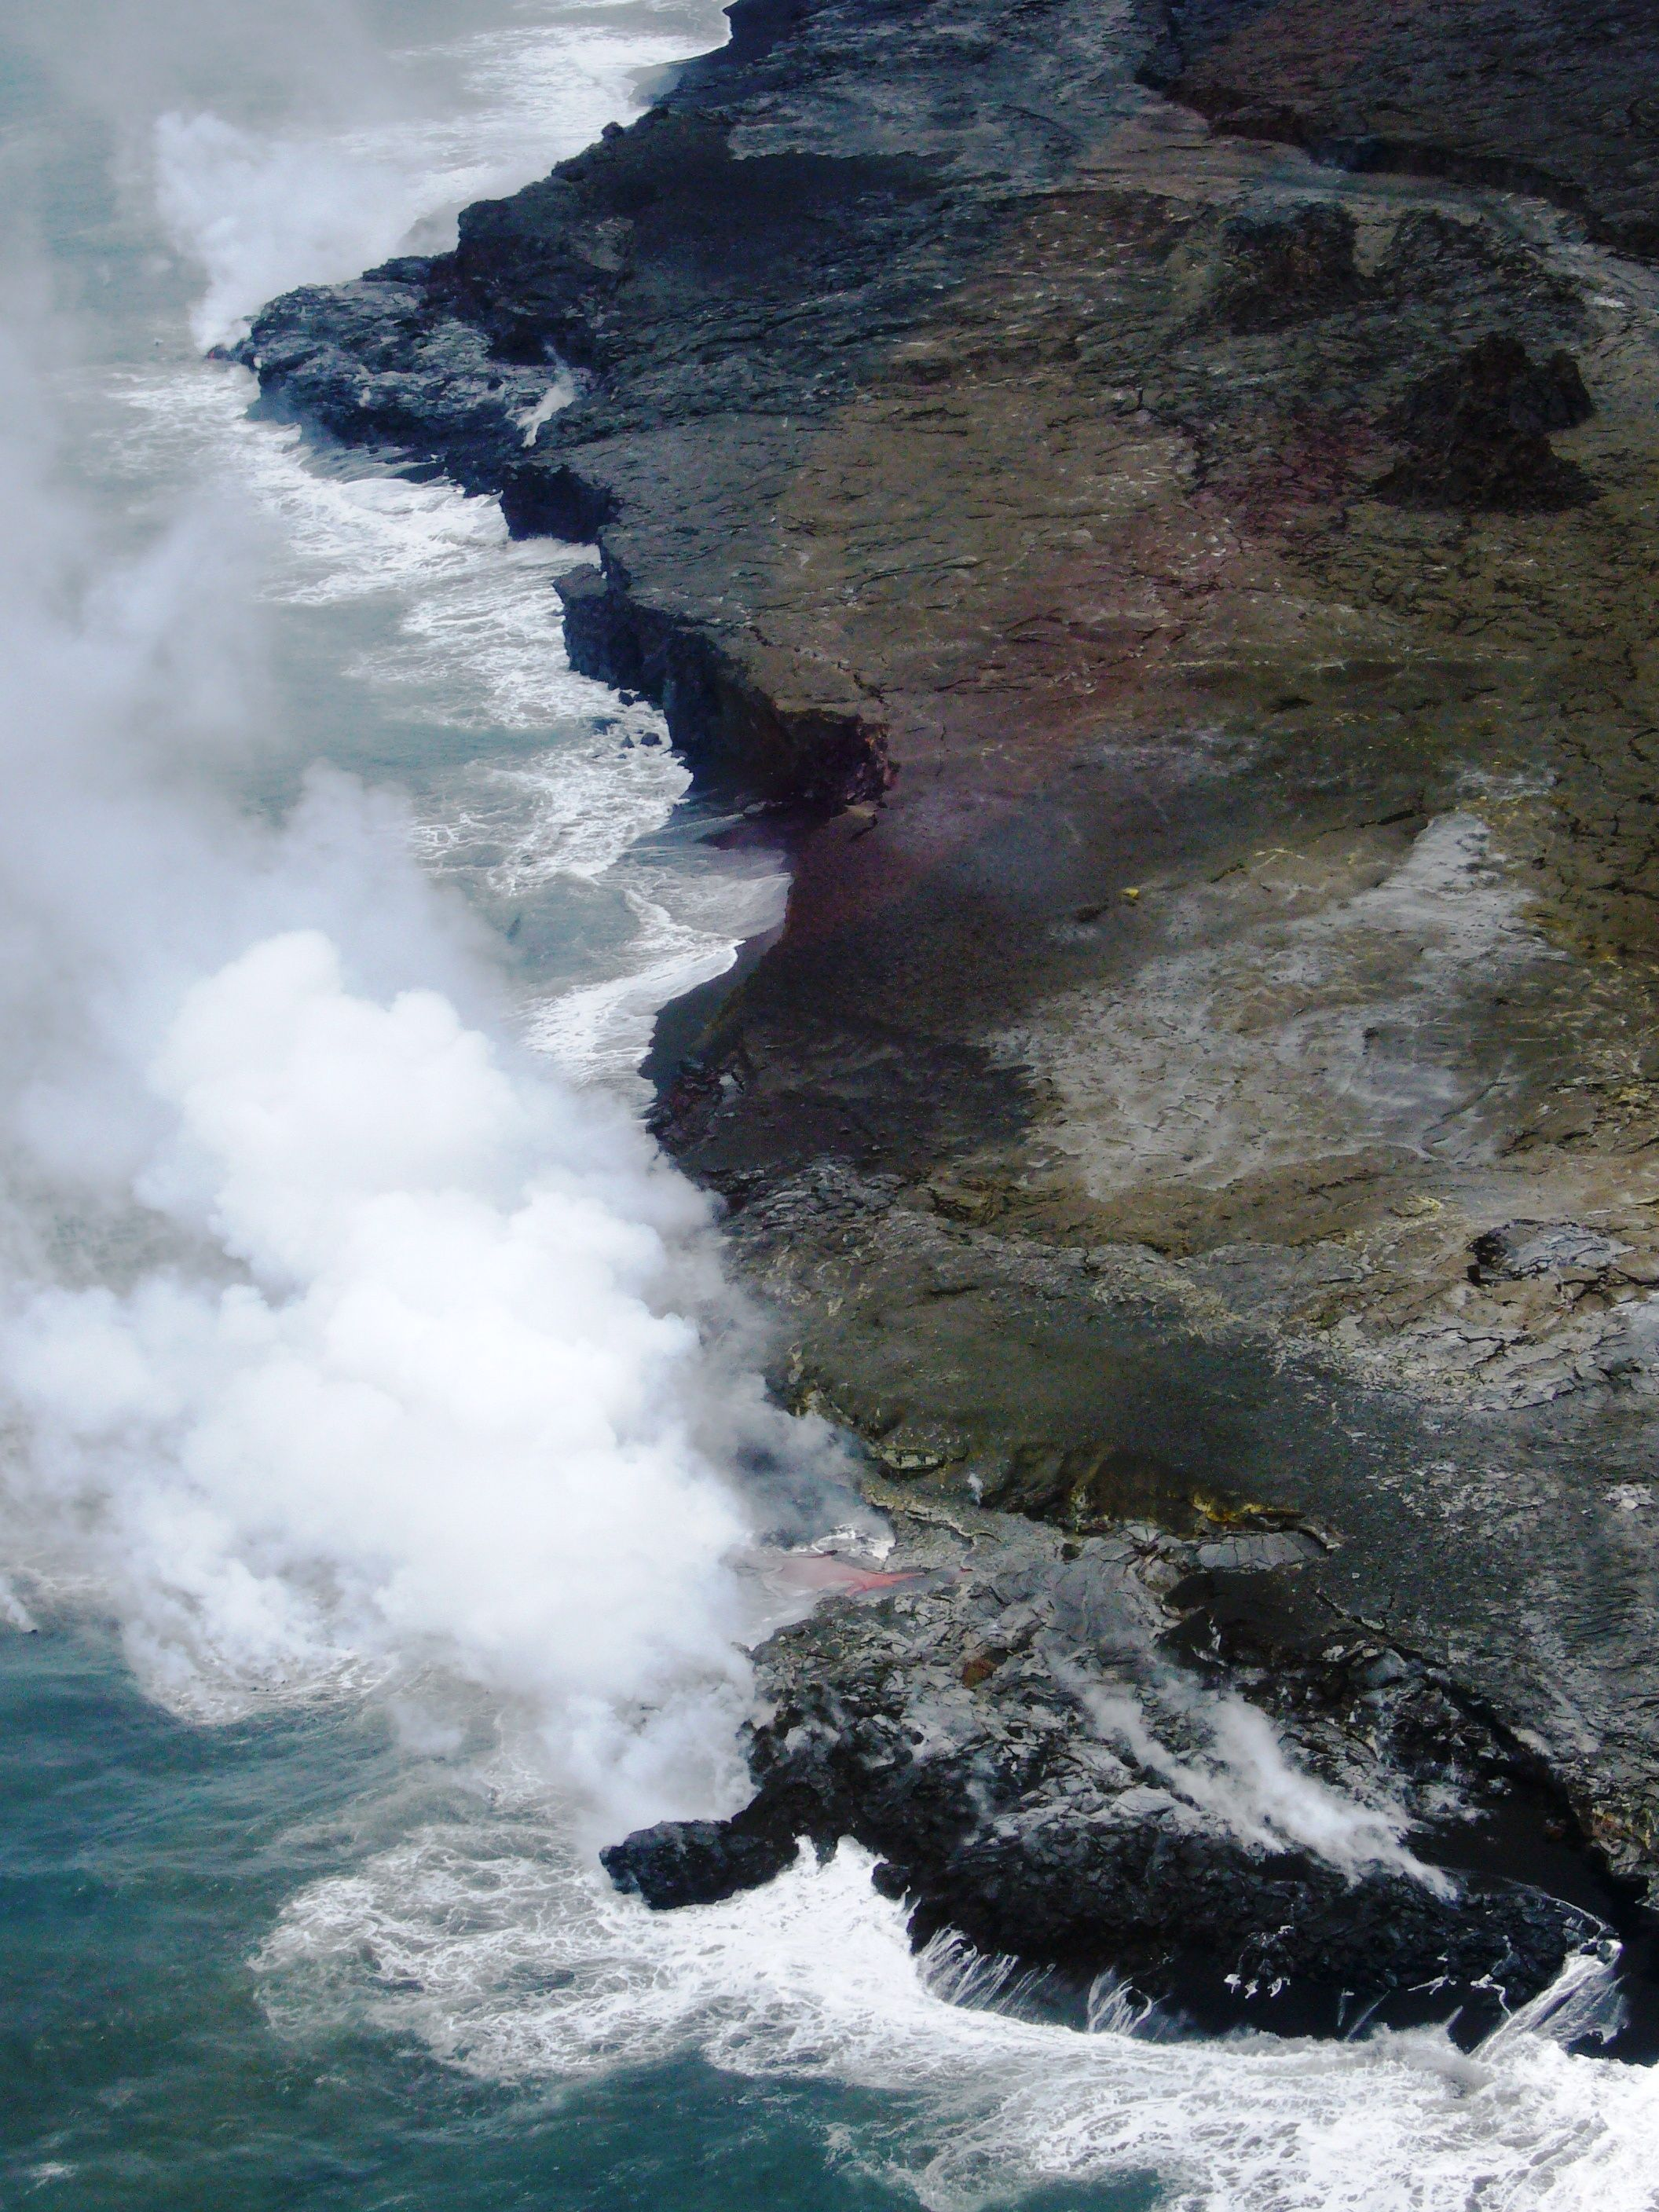 Helicopter Tour Of The Volcanic Activity At Hawaii Volcanoes National Park Hawaii The Park Is